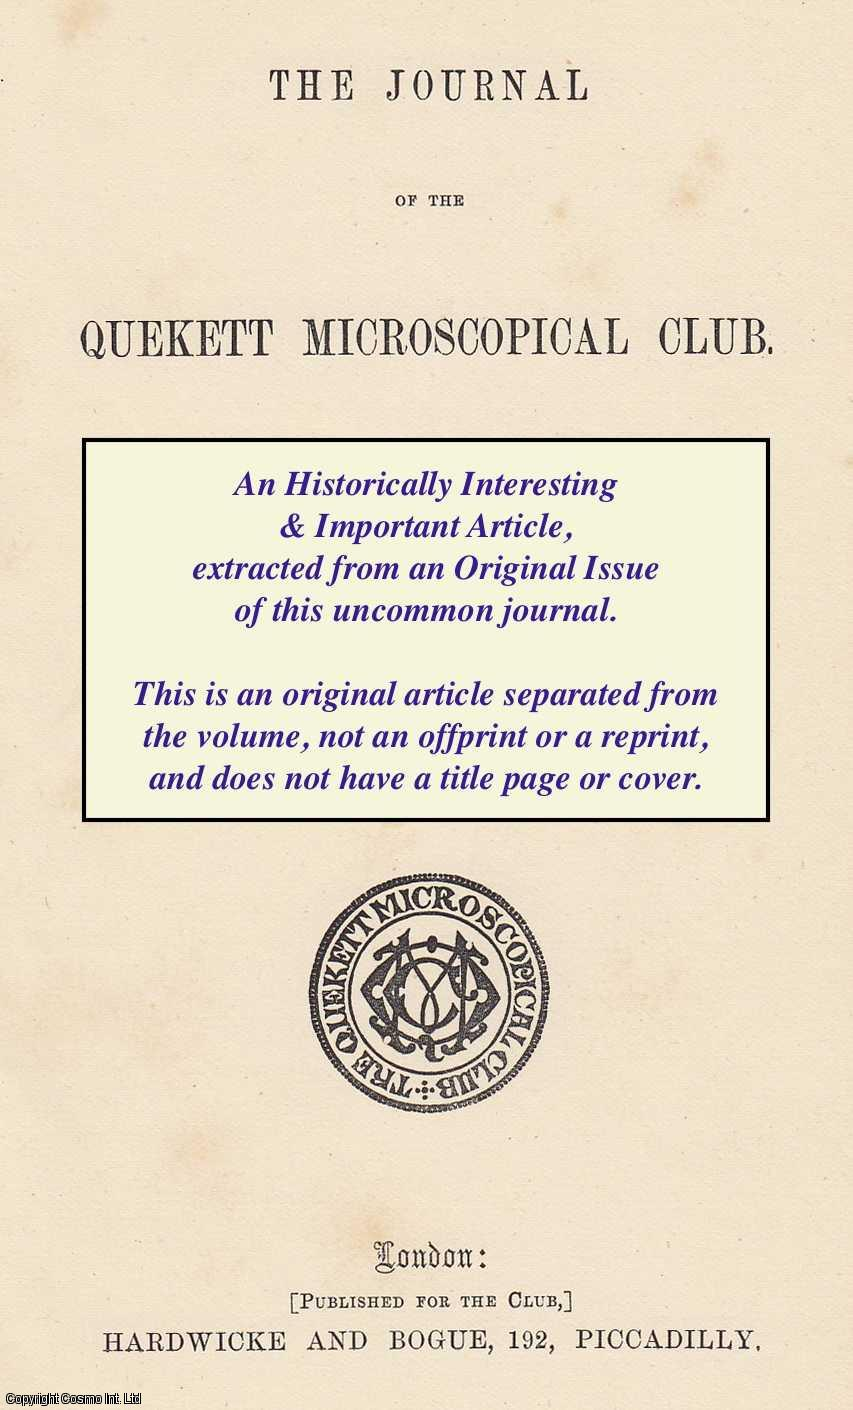 INGPEN, JOHN E. - Personal Equation, with Reference To Microscopy. A rare original article from the Journal of the Quekett Microscopical Club, 1874.